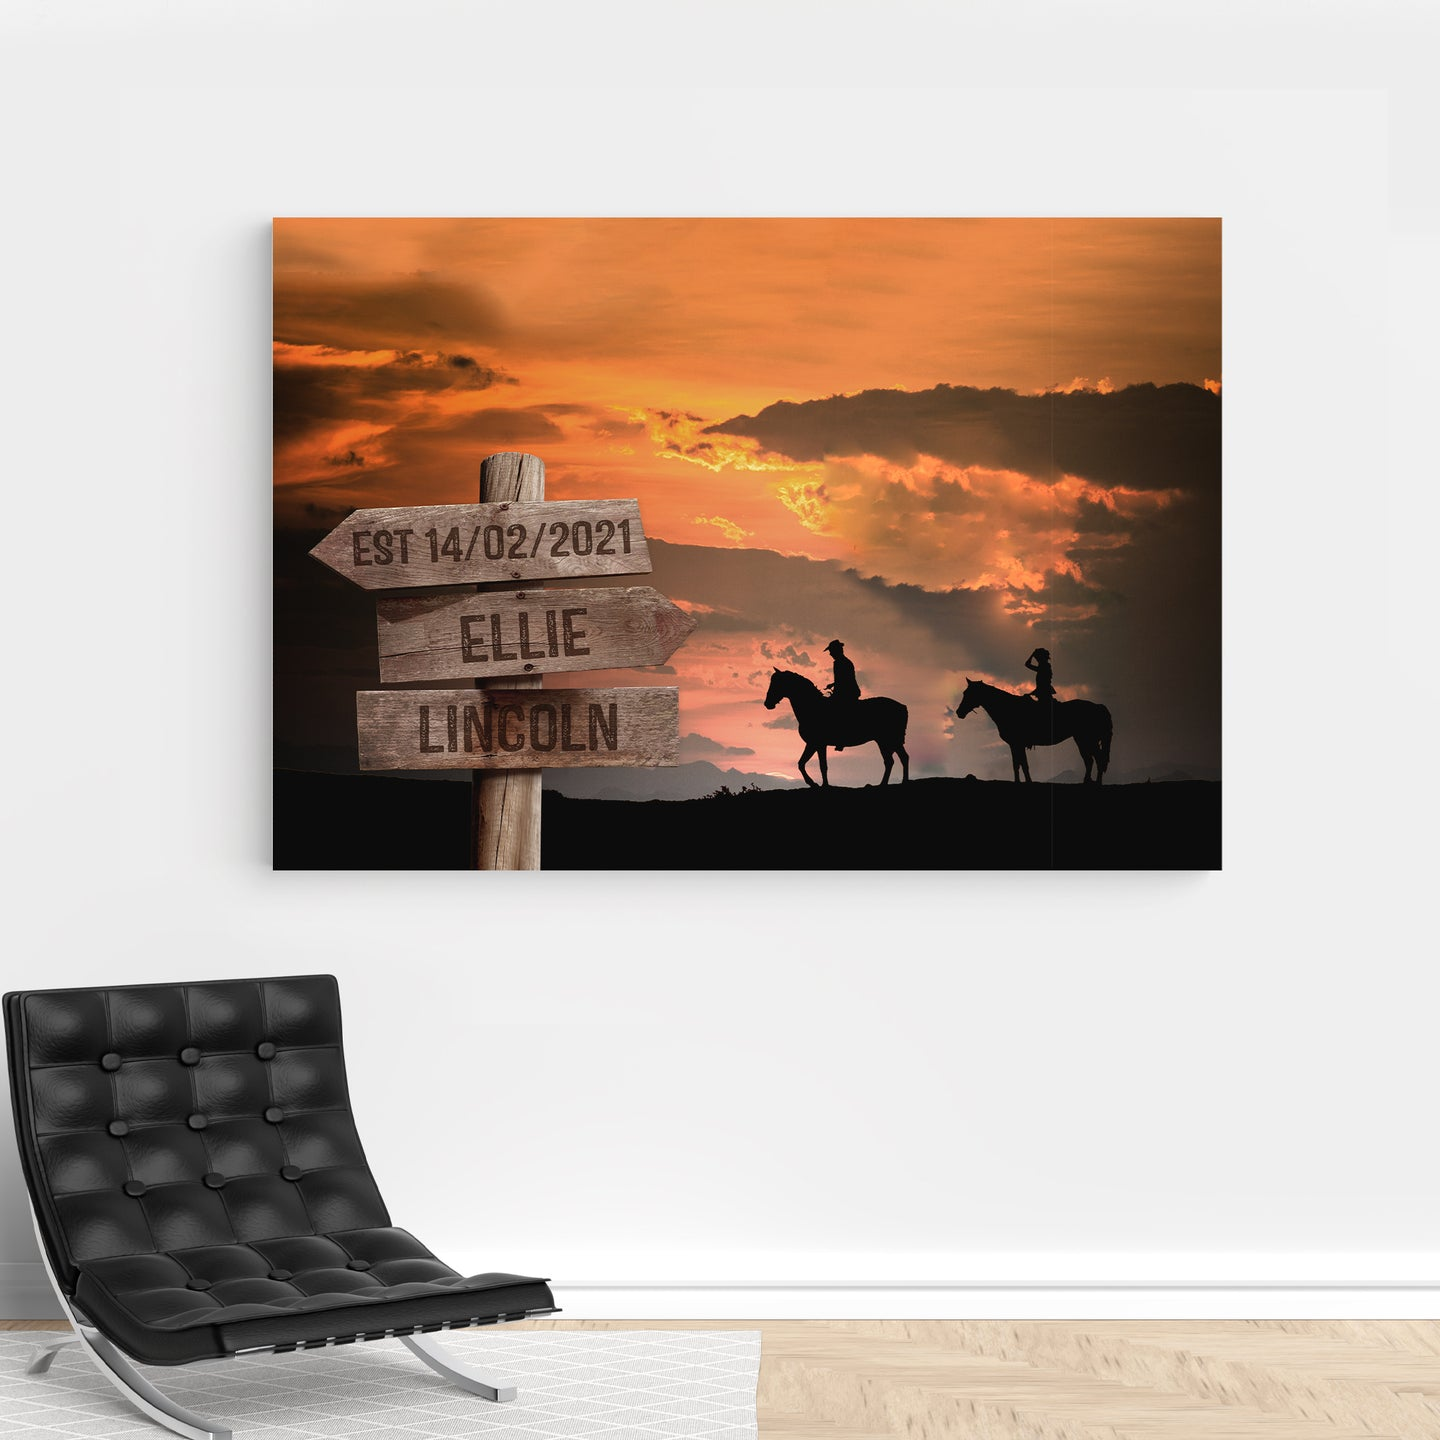 Foal14 Personalized Canvas For Partner Anniversay Gift, Couple And Landscapes, With Personalized Names